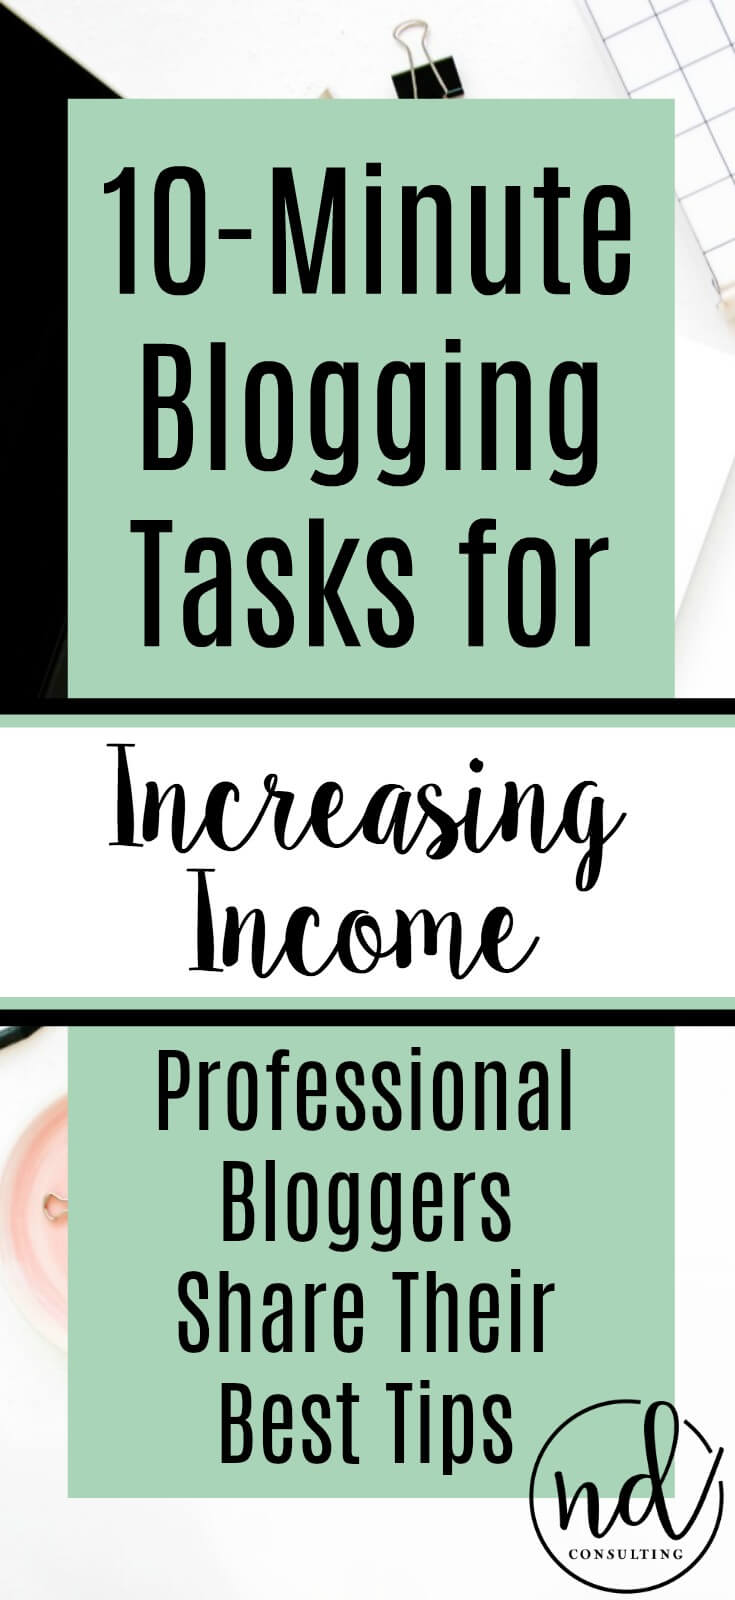 10 Minute Blogging Quick Tips for Increasing Blog Income